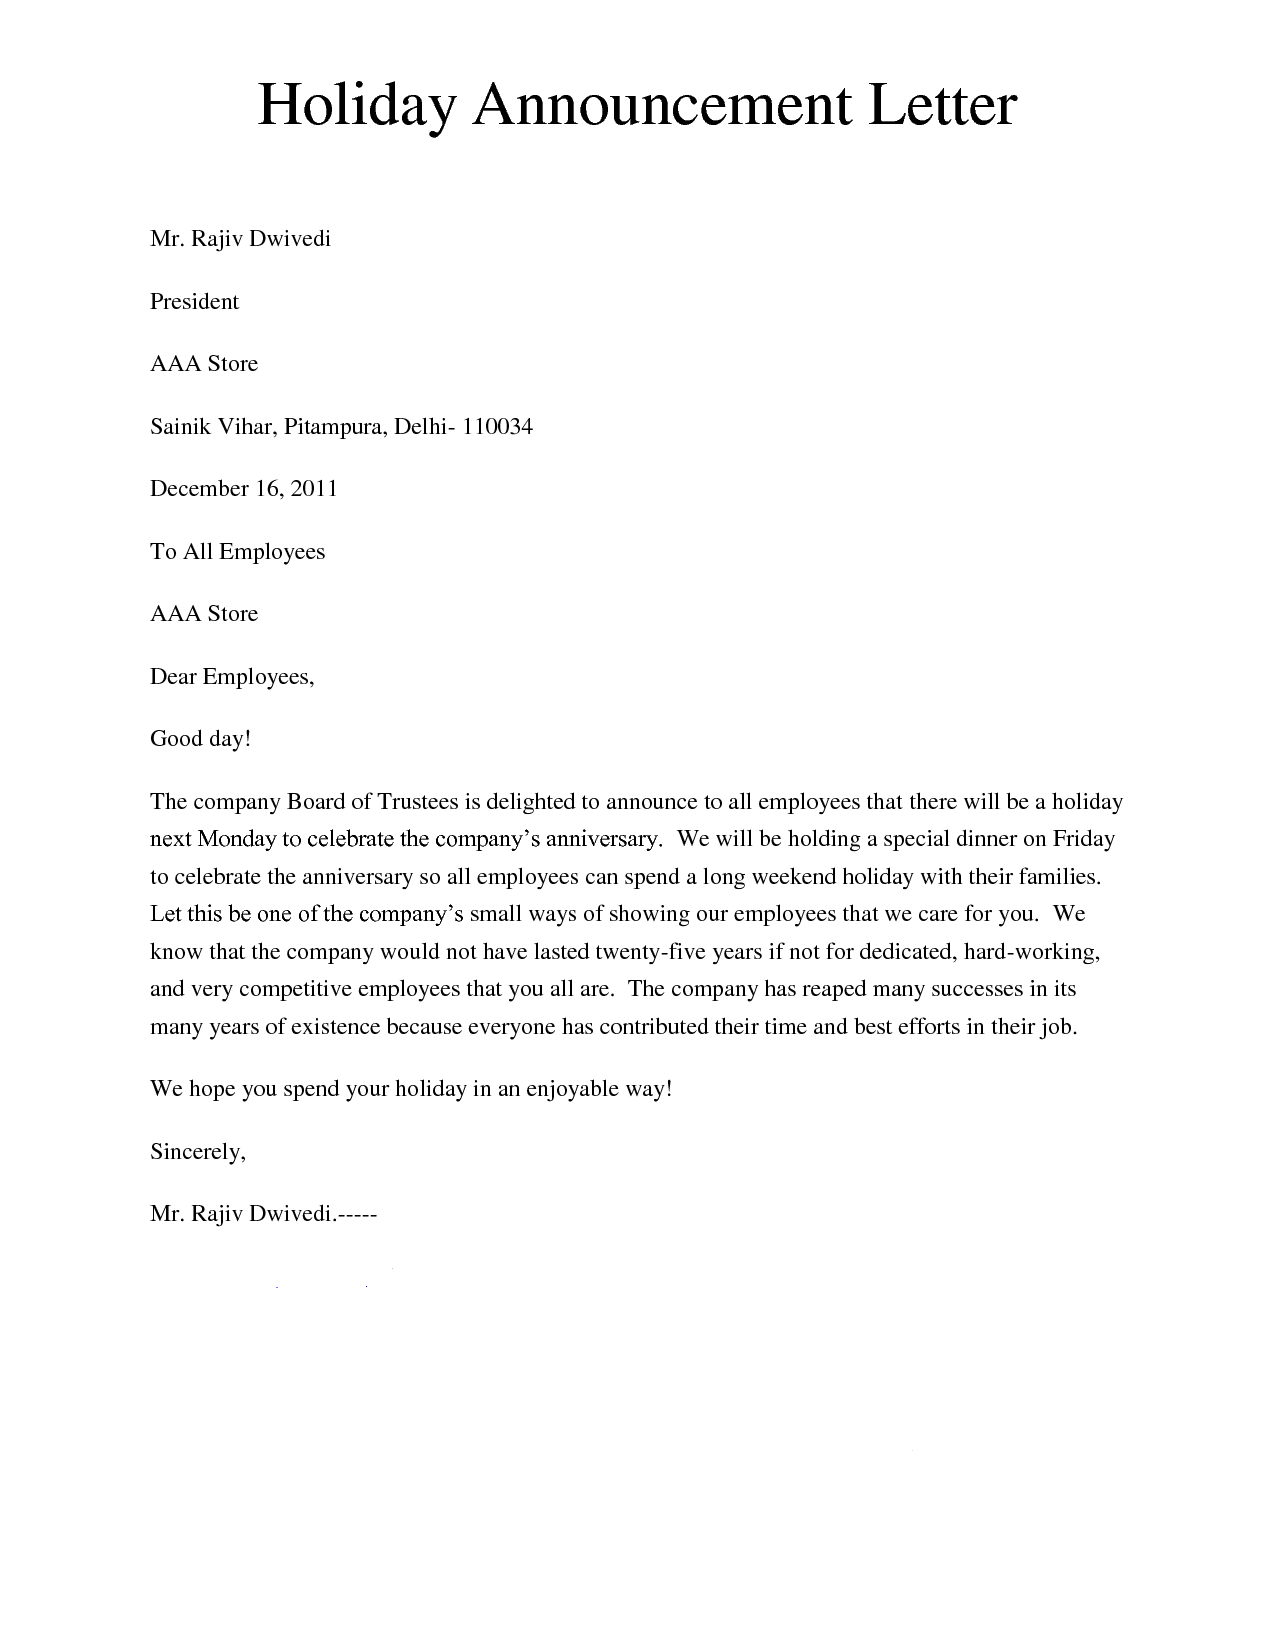 Refinance Letter Template - Holiday Announcement Letter Giving A Letter to Inform About the